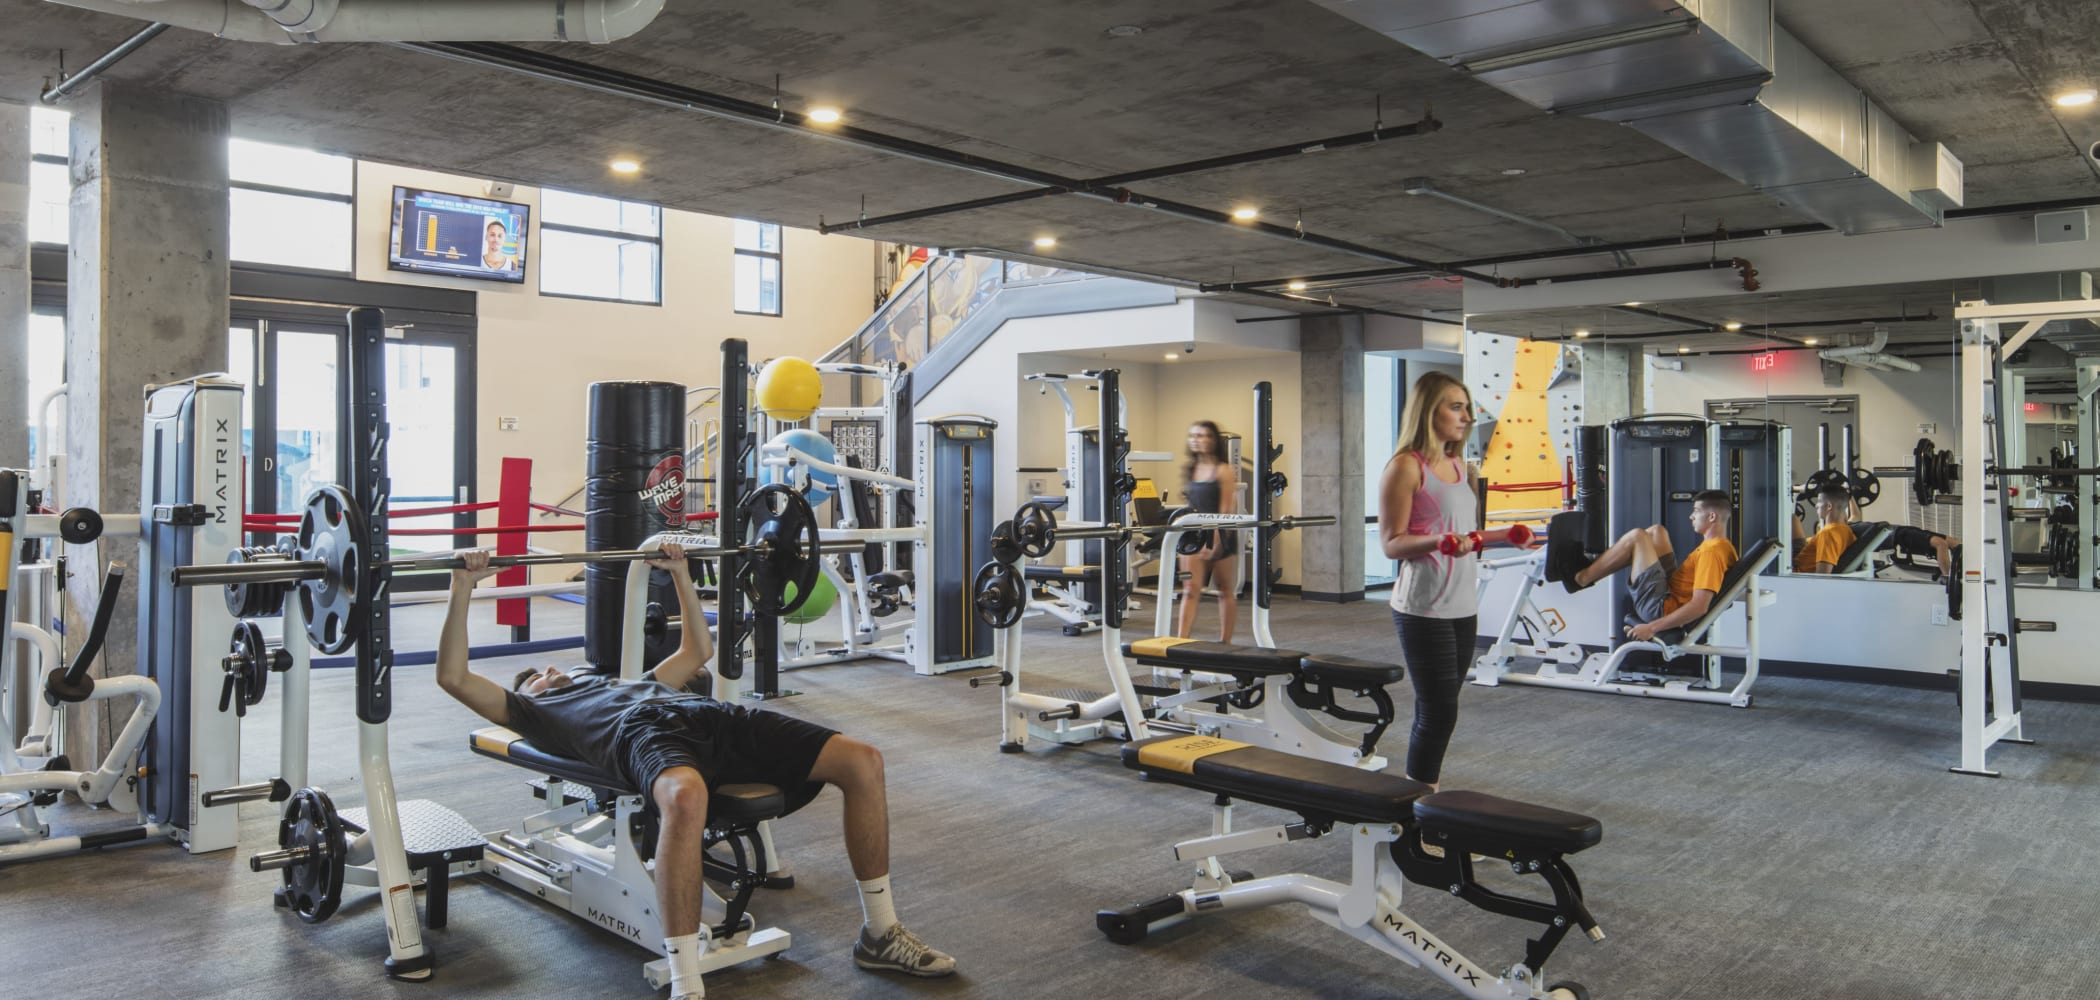 Fitness center at RISE on Apache in Tempe, Arizona